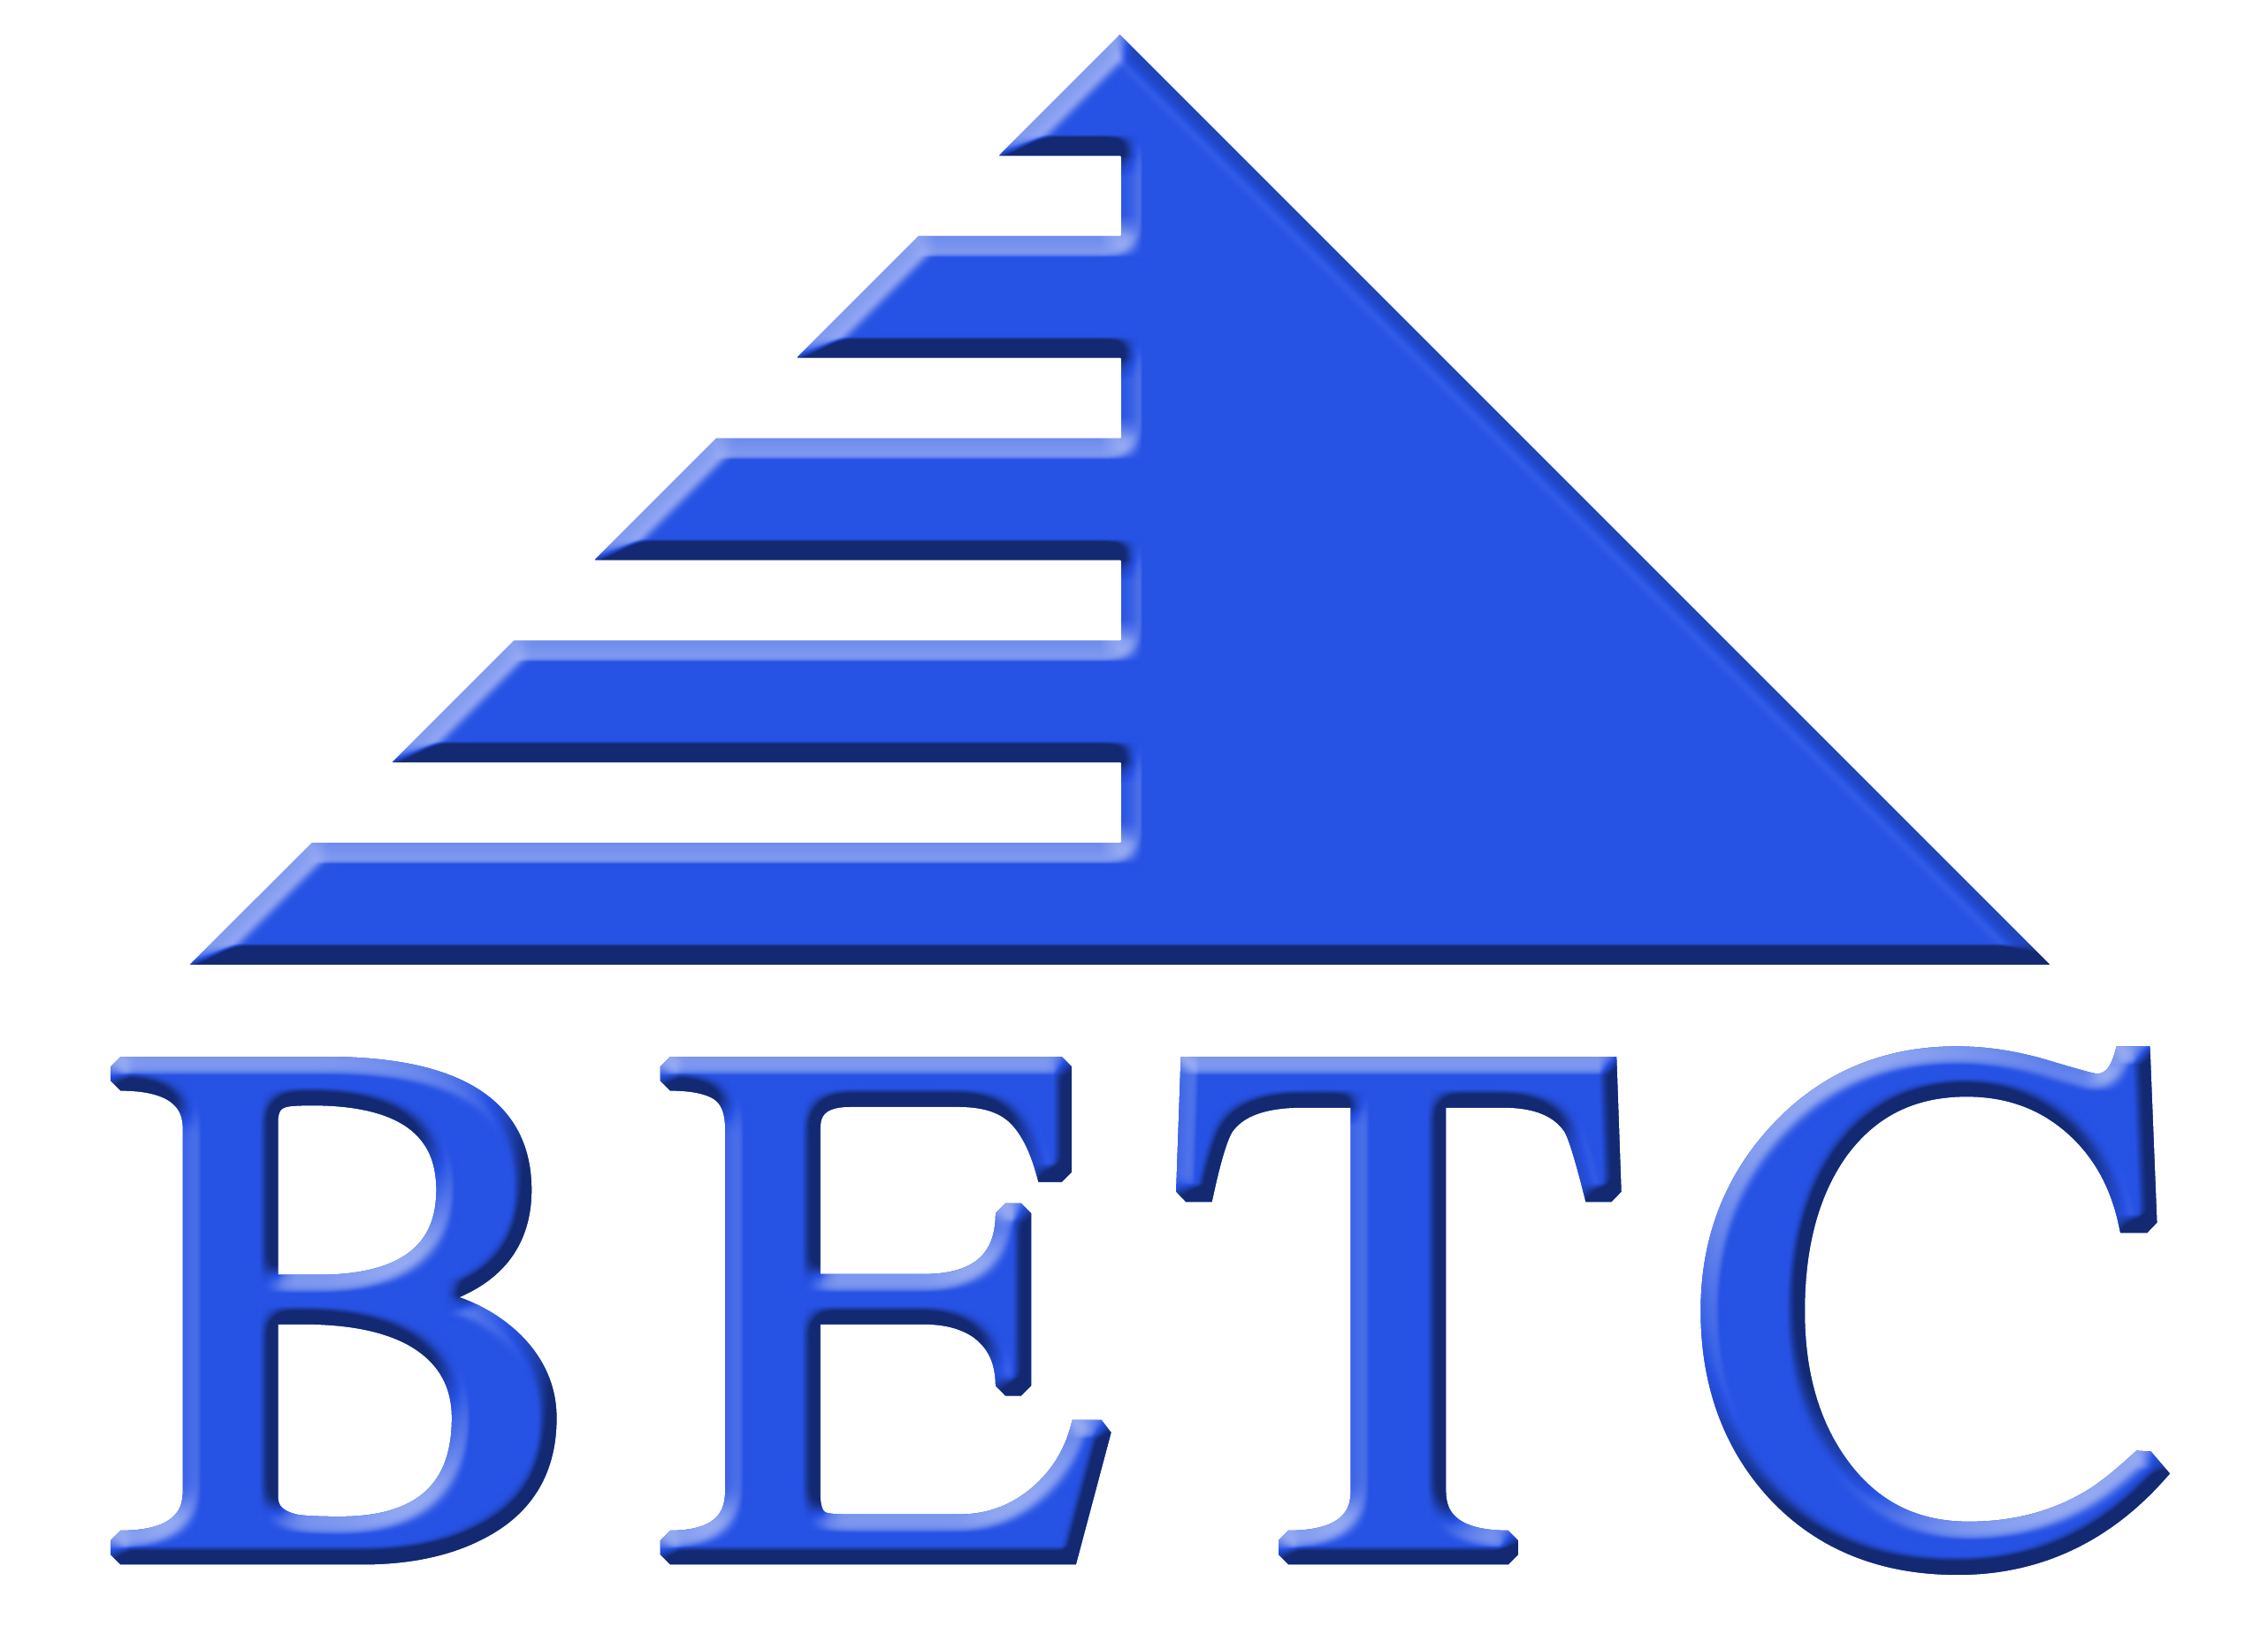 BETC Drive (Shanghai) Co.,Ltd